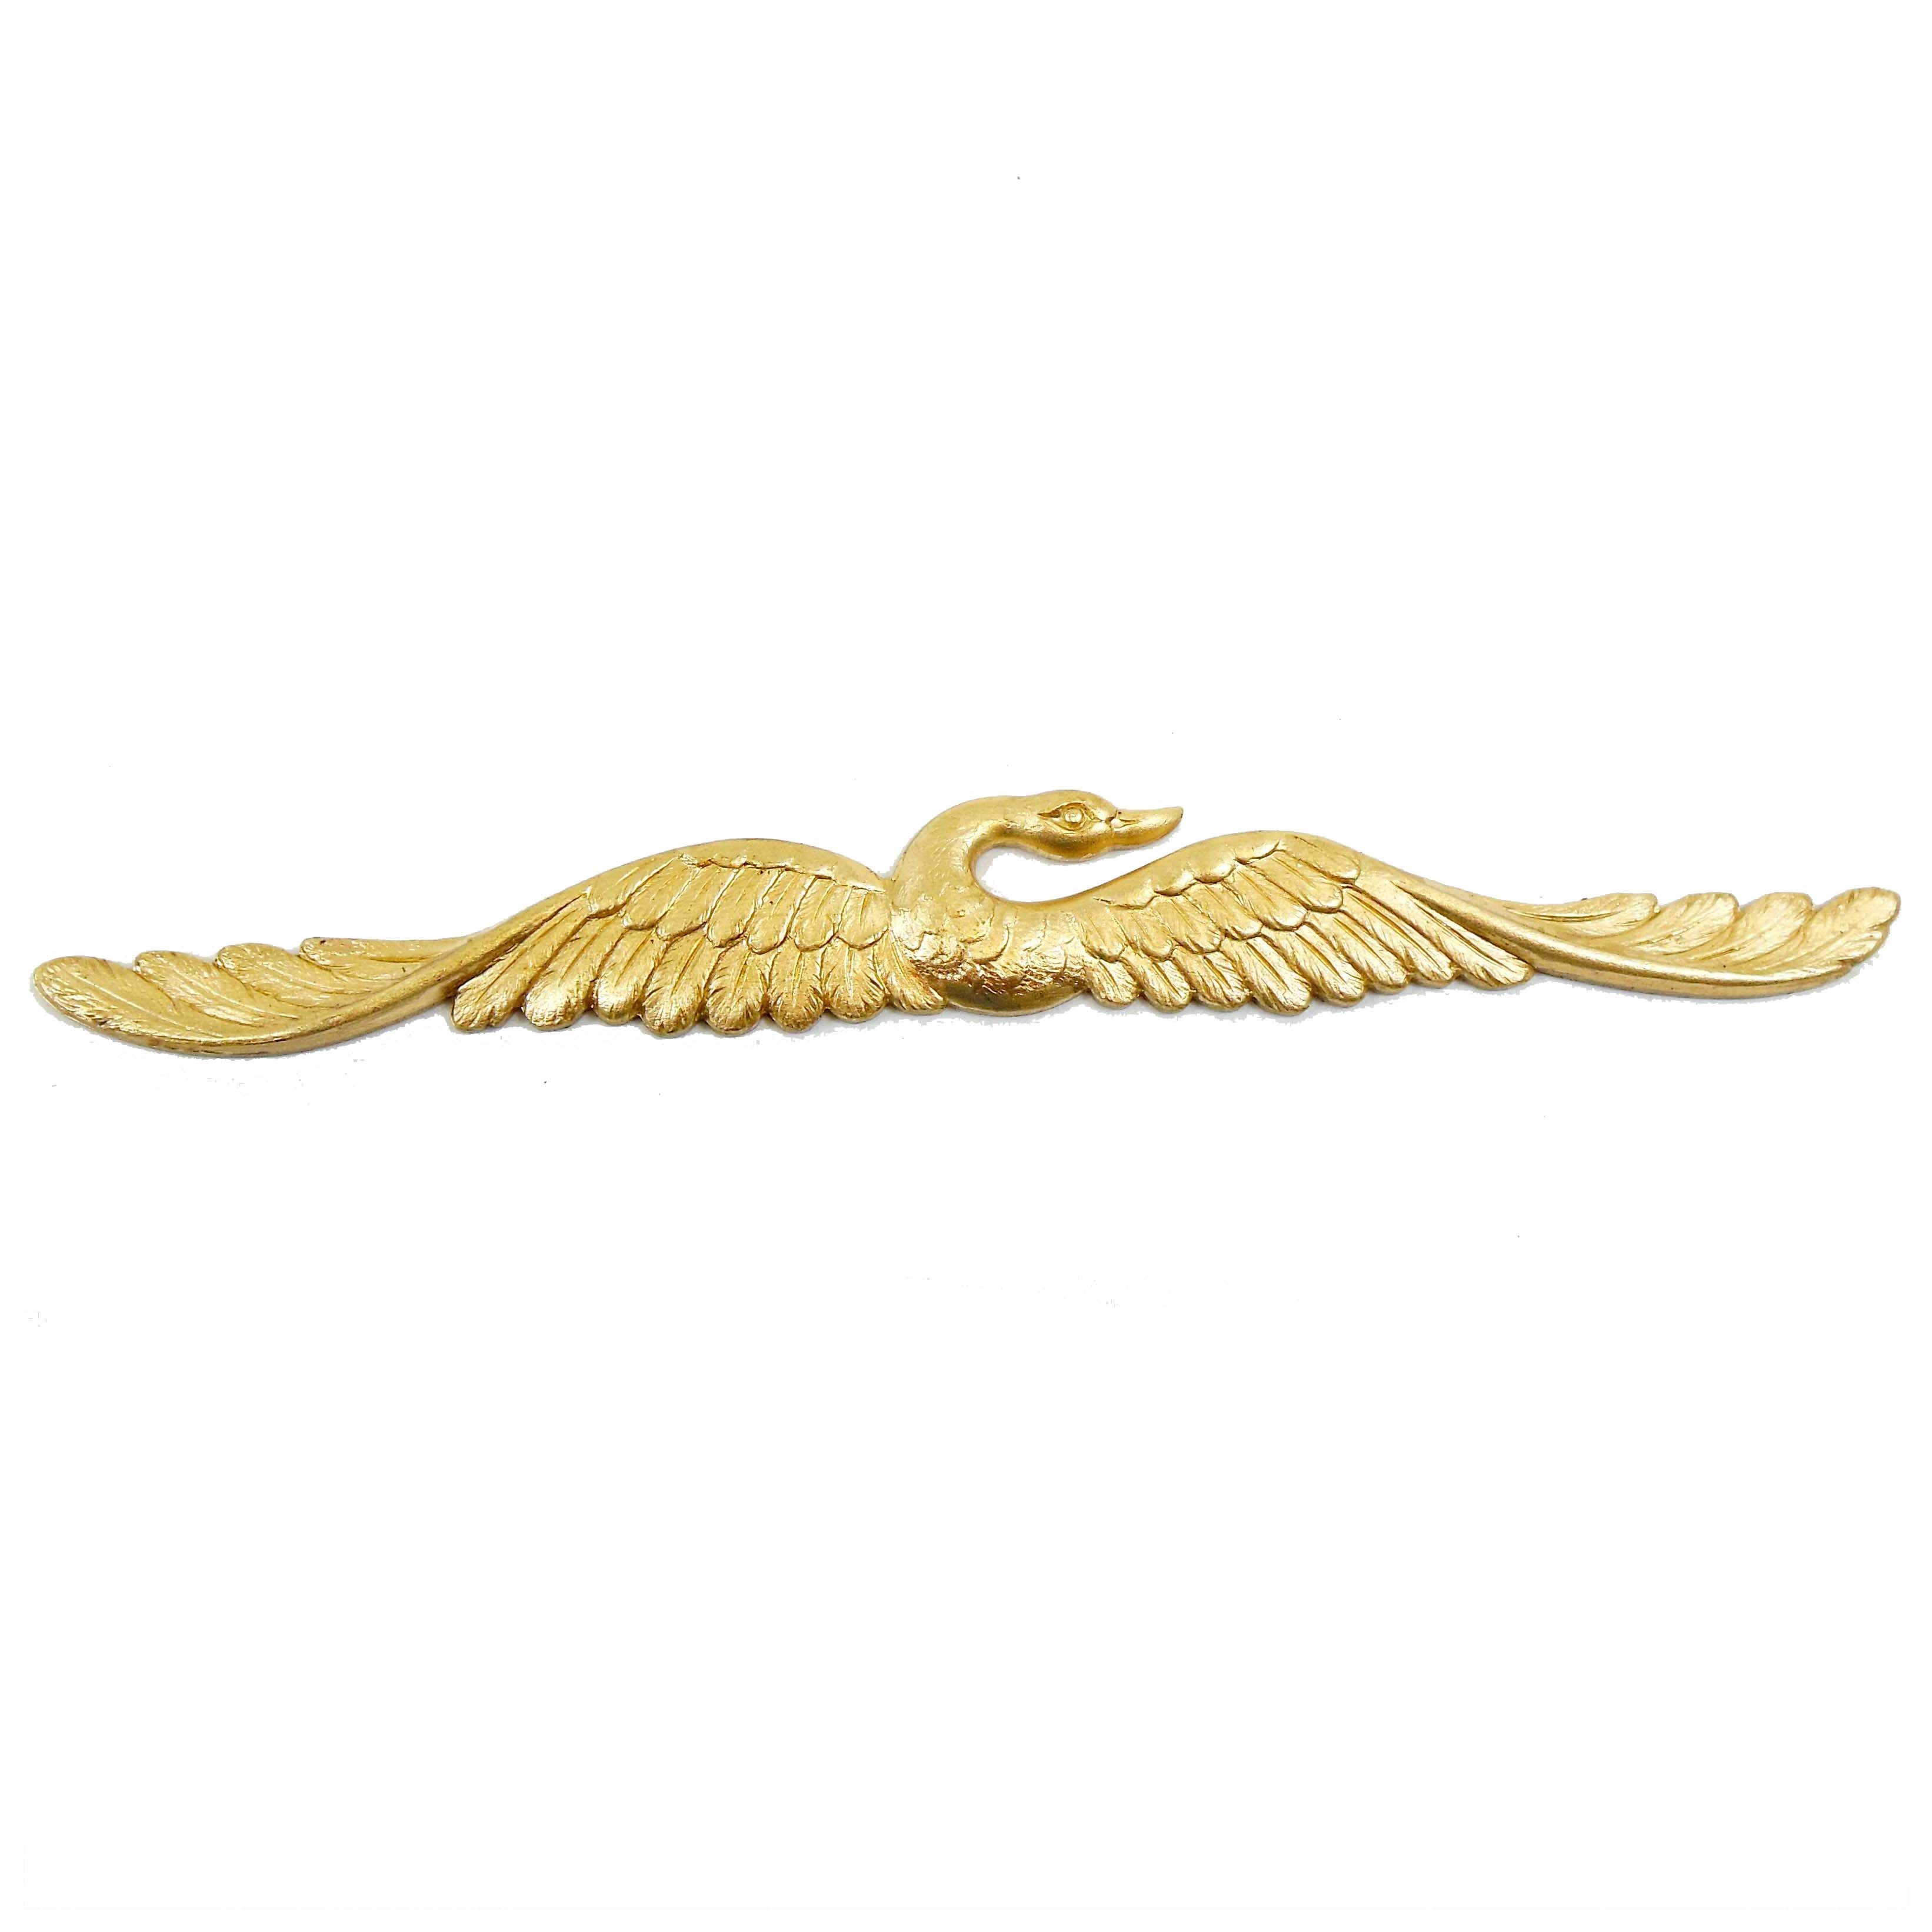 brass birds, bird jewelry, jewelry supplies